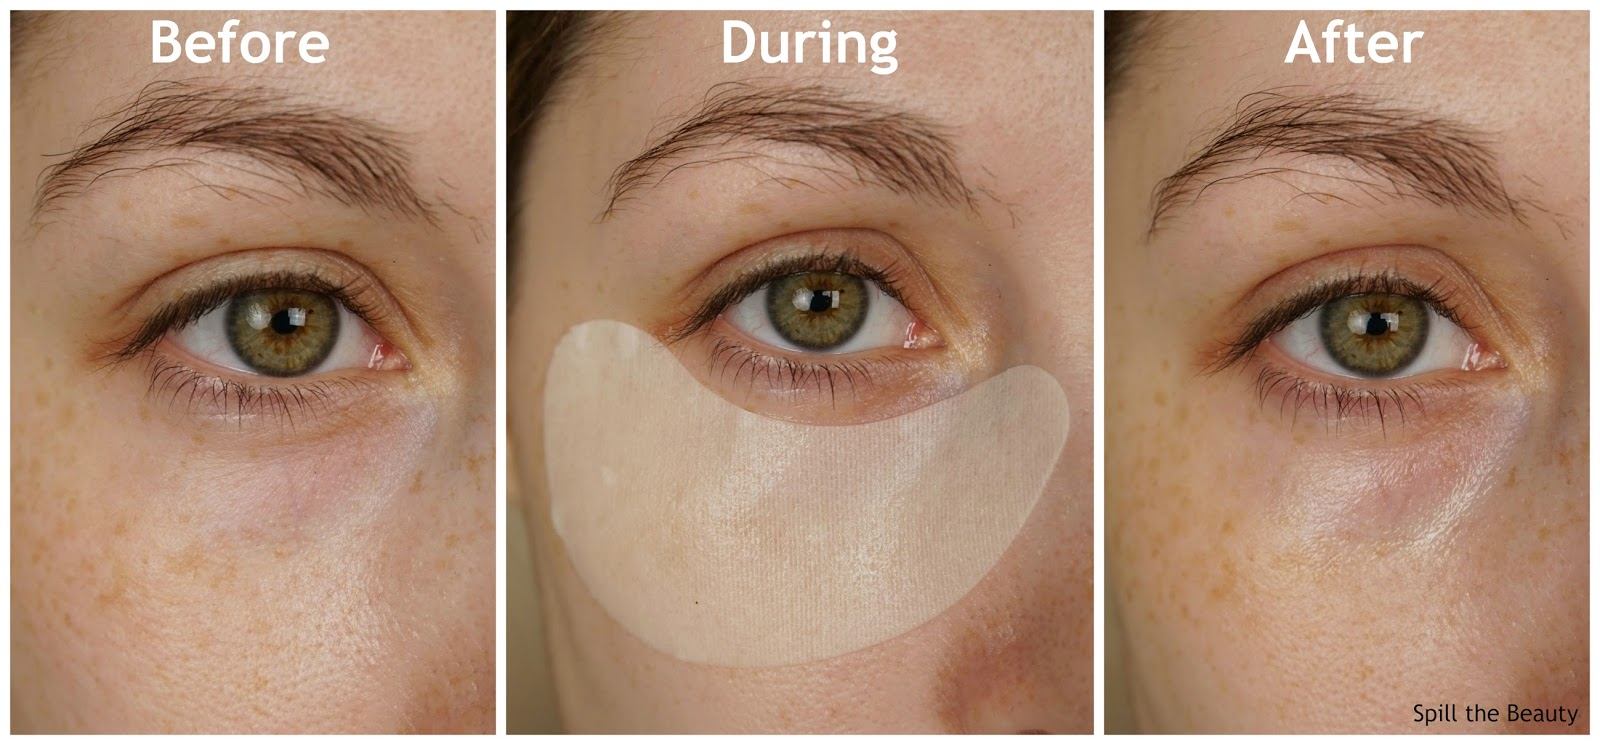 estee lauder Advanced Night Repair Recovery Mask-In-Oil concentrated recovery eye mask review before and after